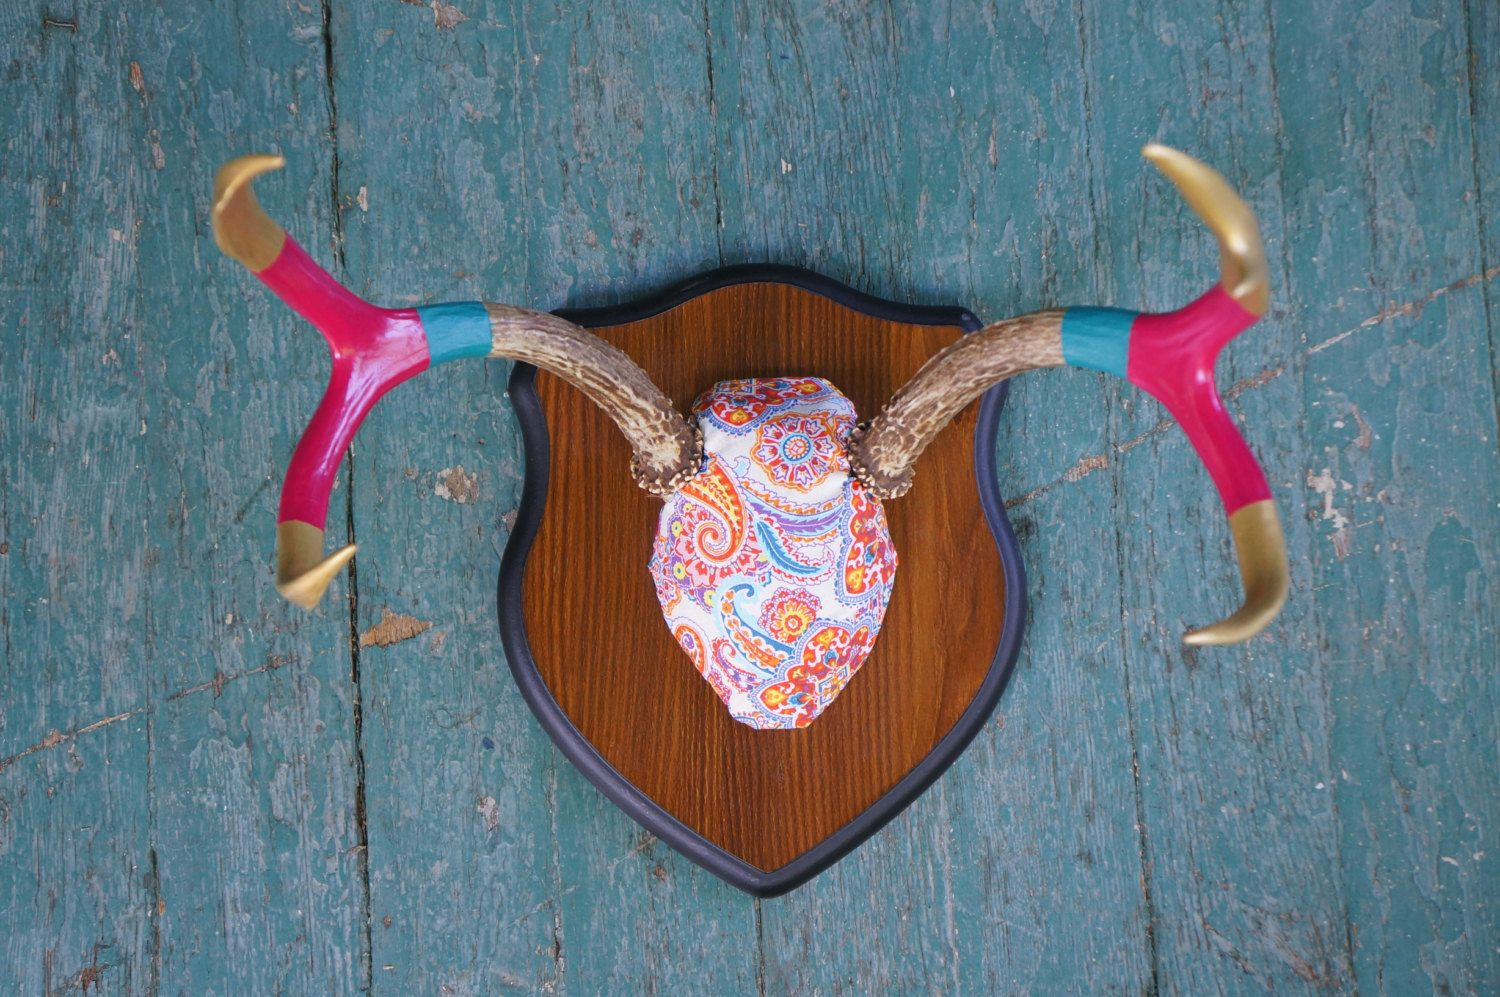 Upcycled Painted Deer Mount Vintage by MountainsideDesigns on Etsy, $88.00